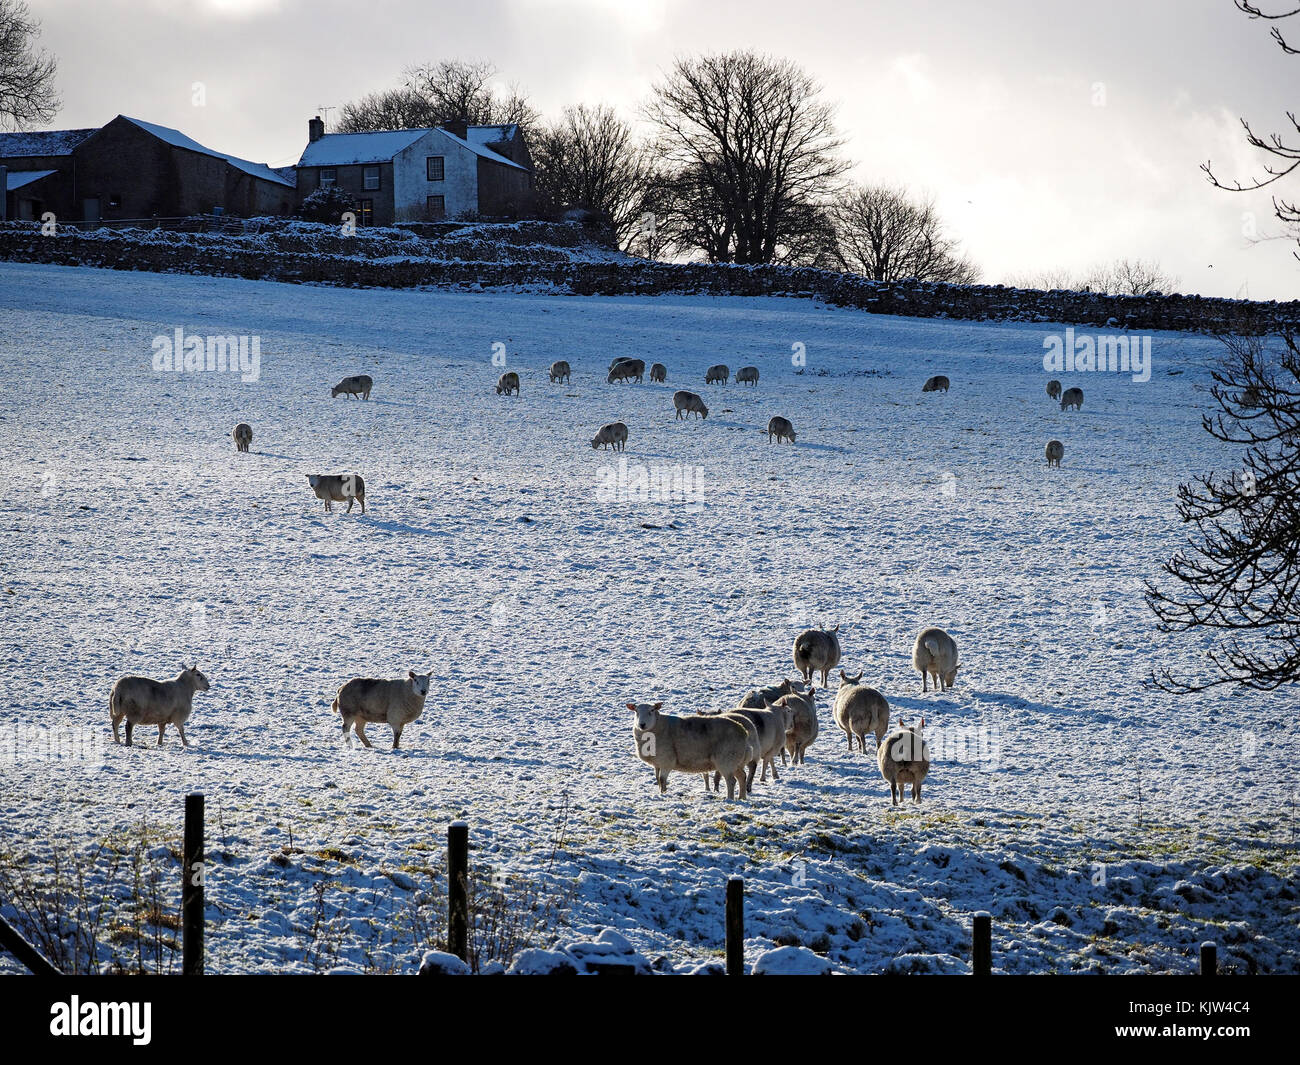 Cumbria, UK. 25th November, 2017. sheep standing in snowy field with farmhouse and barns in background as winter - Stock Image